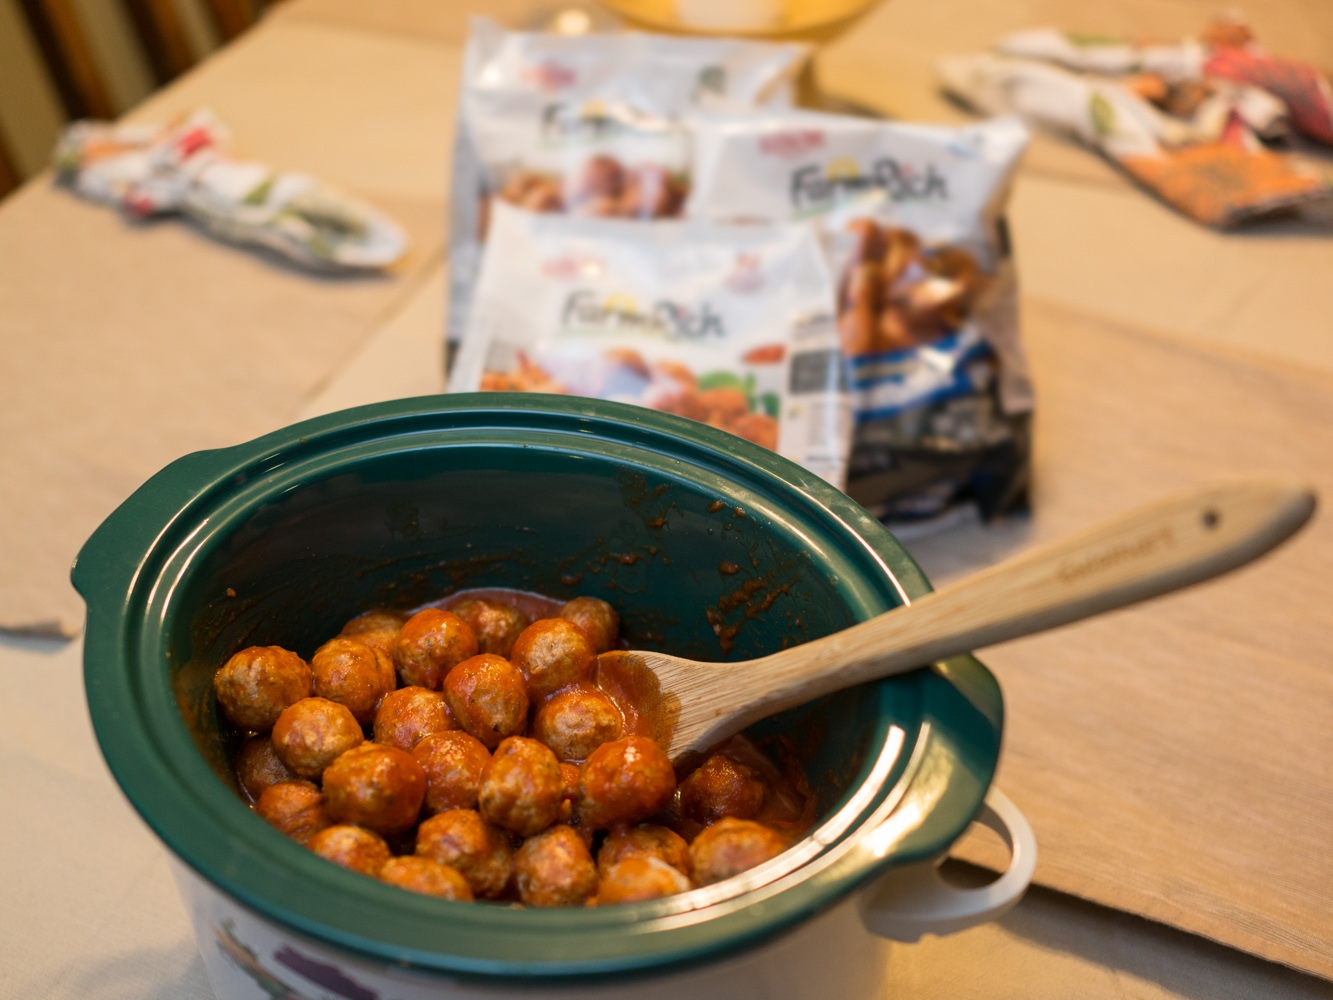 Short on time, but still want to bring homemade food to potlucks? Check out these slow cooker meatball recipes to assemble in bulk and freeze for later.